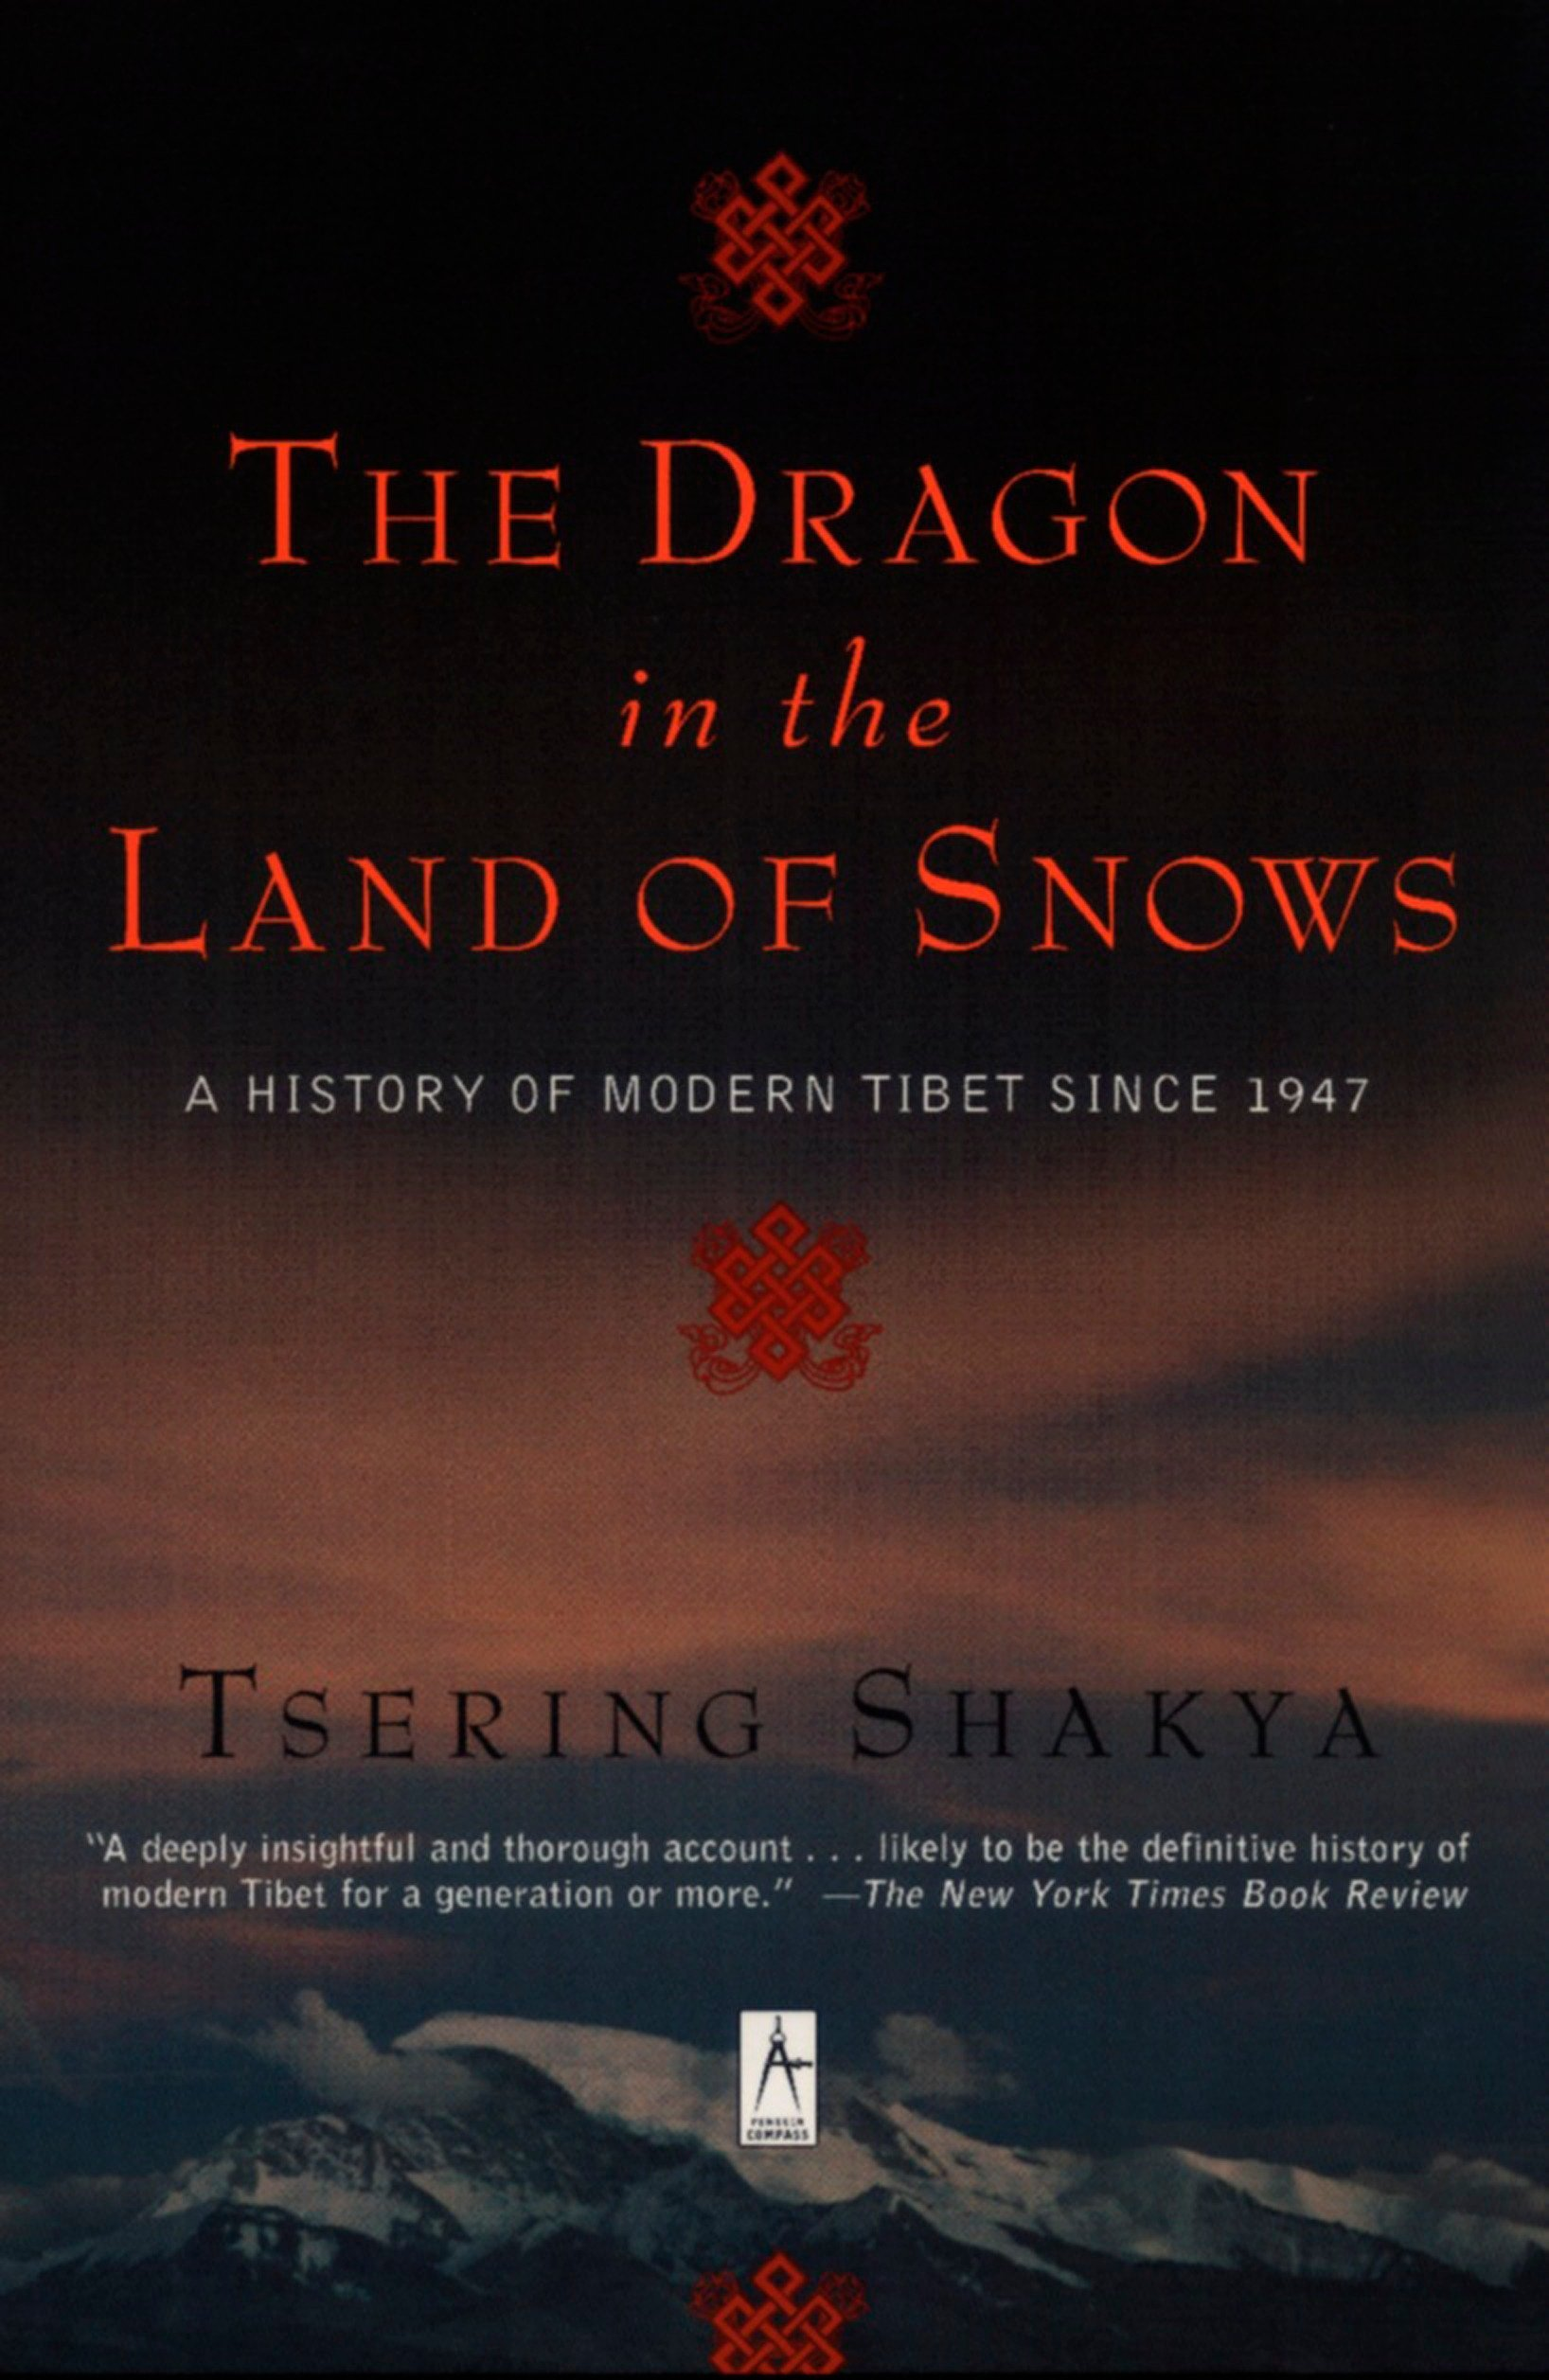 The Dragon in the Land of Snows: A History of Modern Tibet Since 1947  (Compass): Tsering Shakya: 9780140196153: Amazon.com: Books